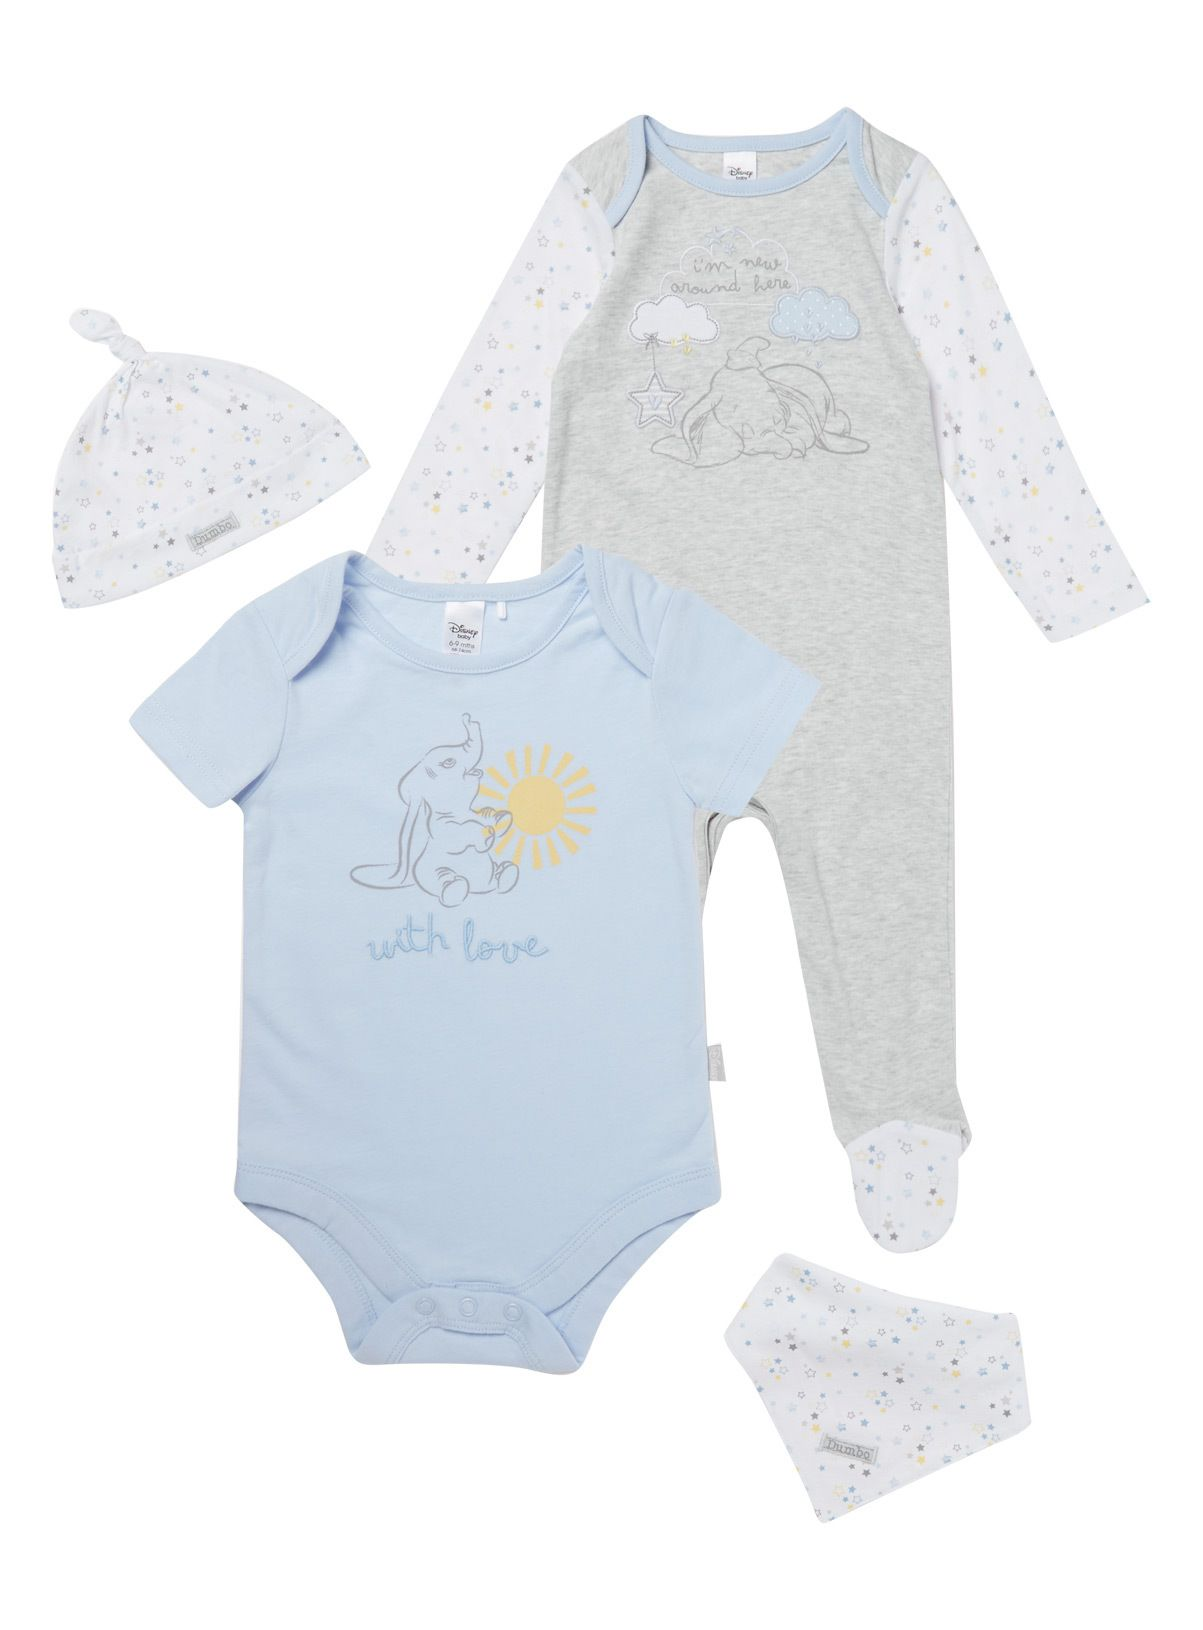 aacbb1302 Complete their first wardrobe with this sweet Dumbo set, including a  bodysuit, sleepsuit,